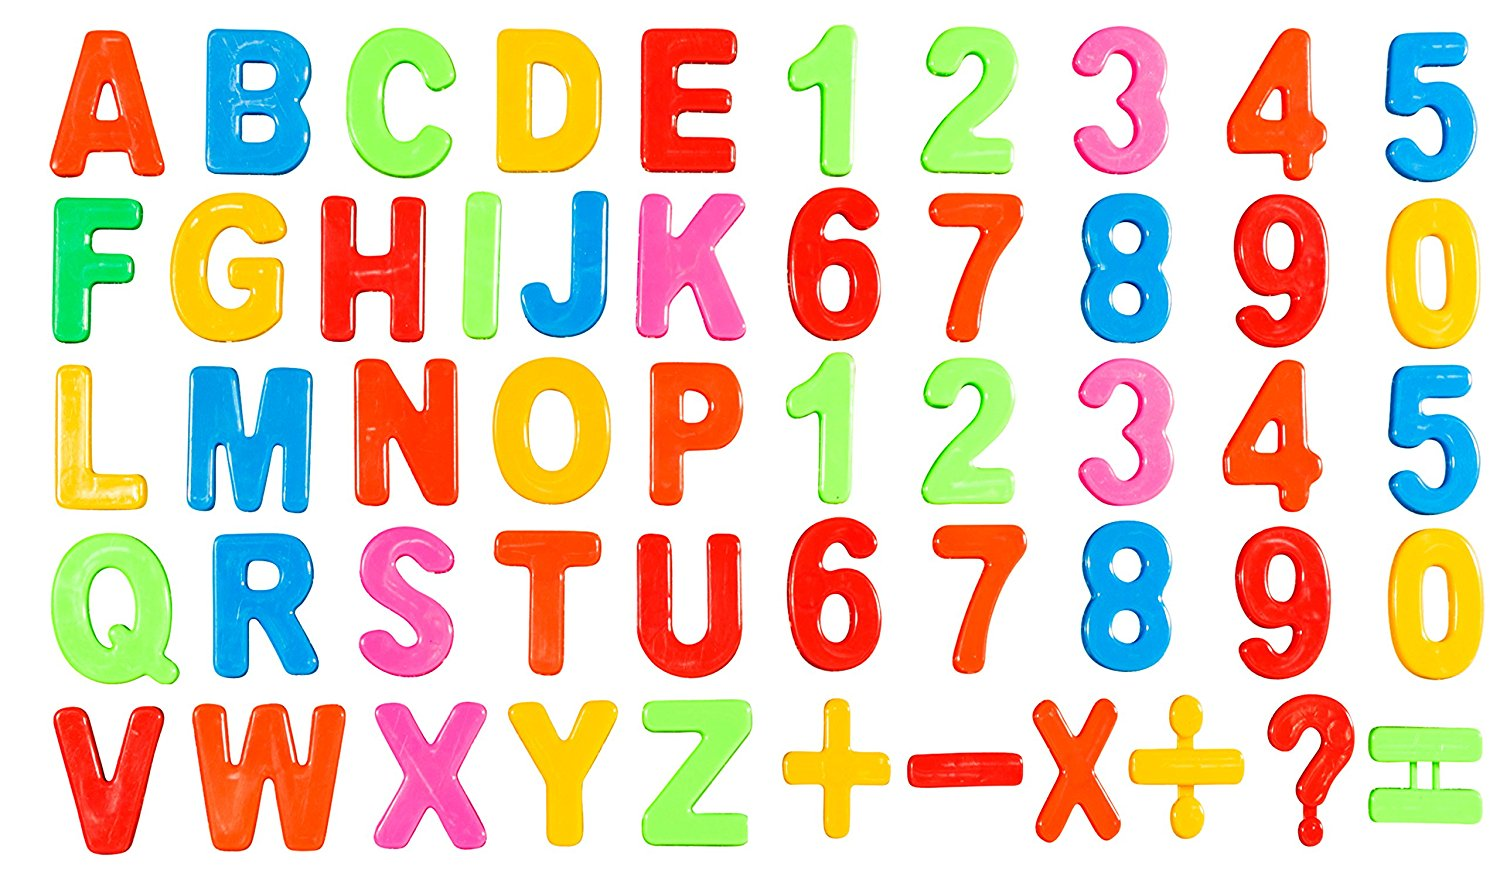 kitchen magnets free standing pantry buy magnetic letters and numbers refrigerator for alphabet